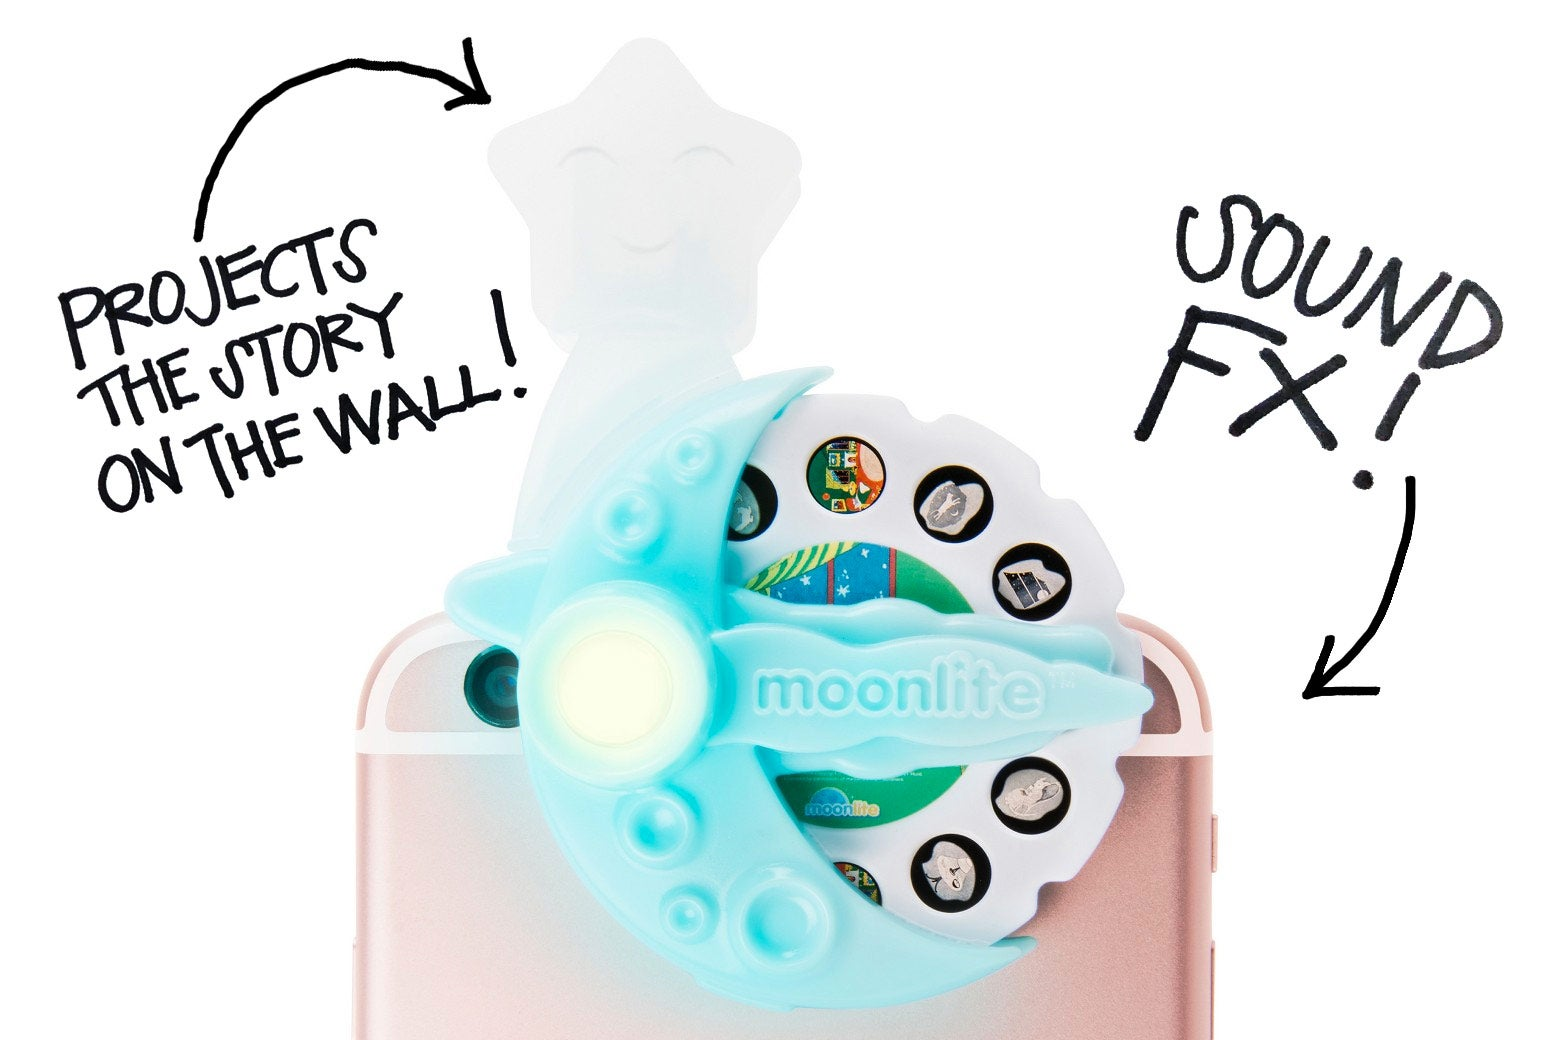 The Moonlite smartphone projector.